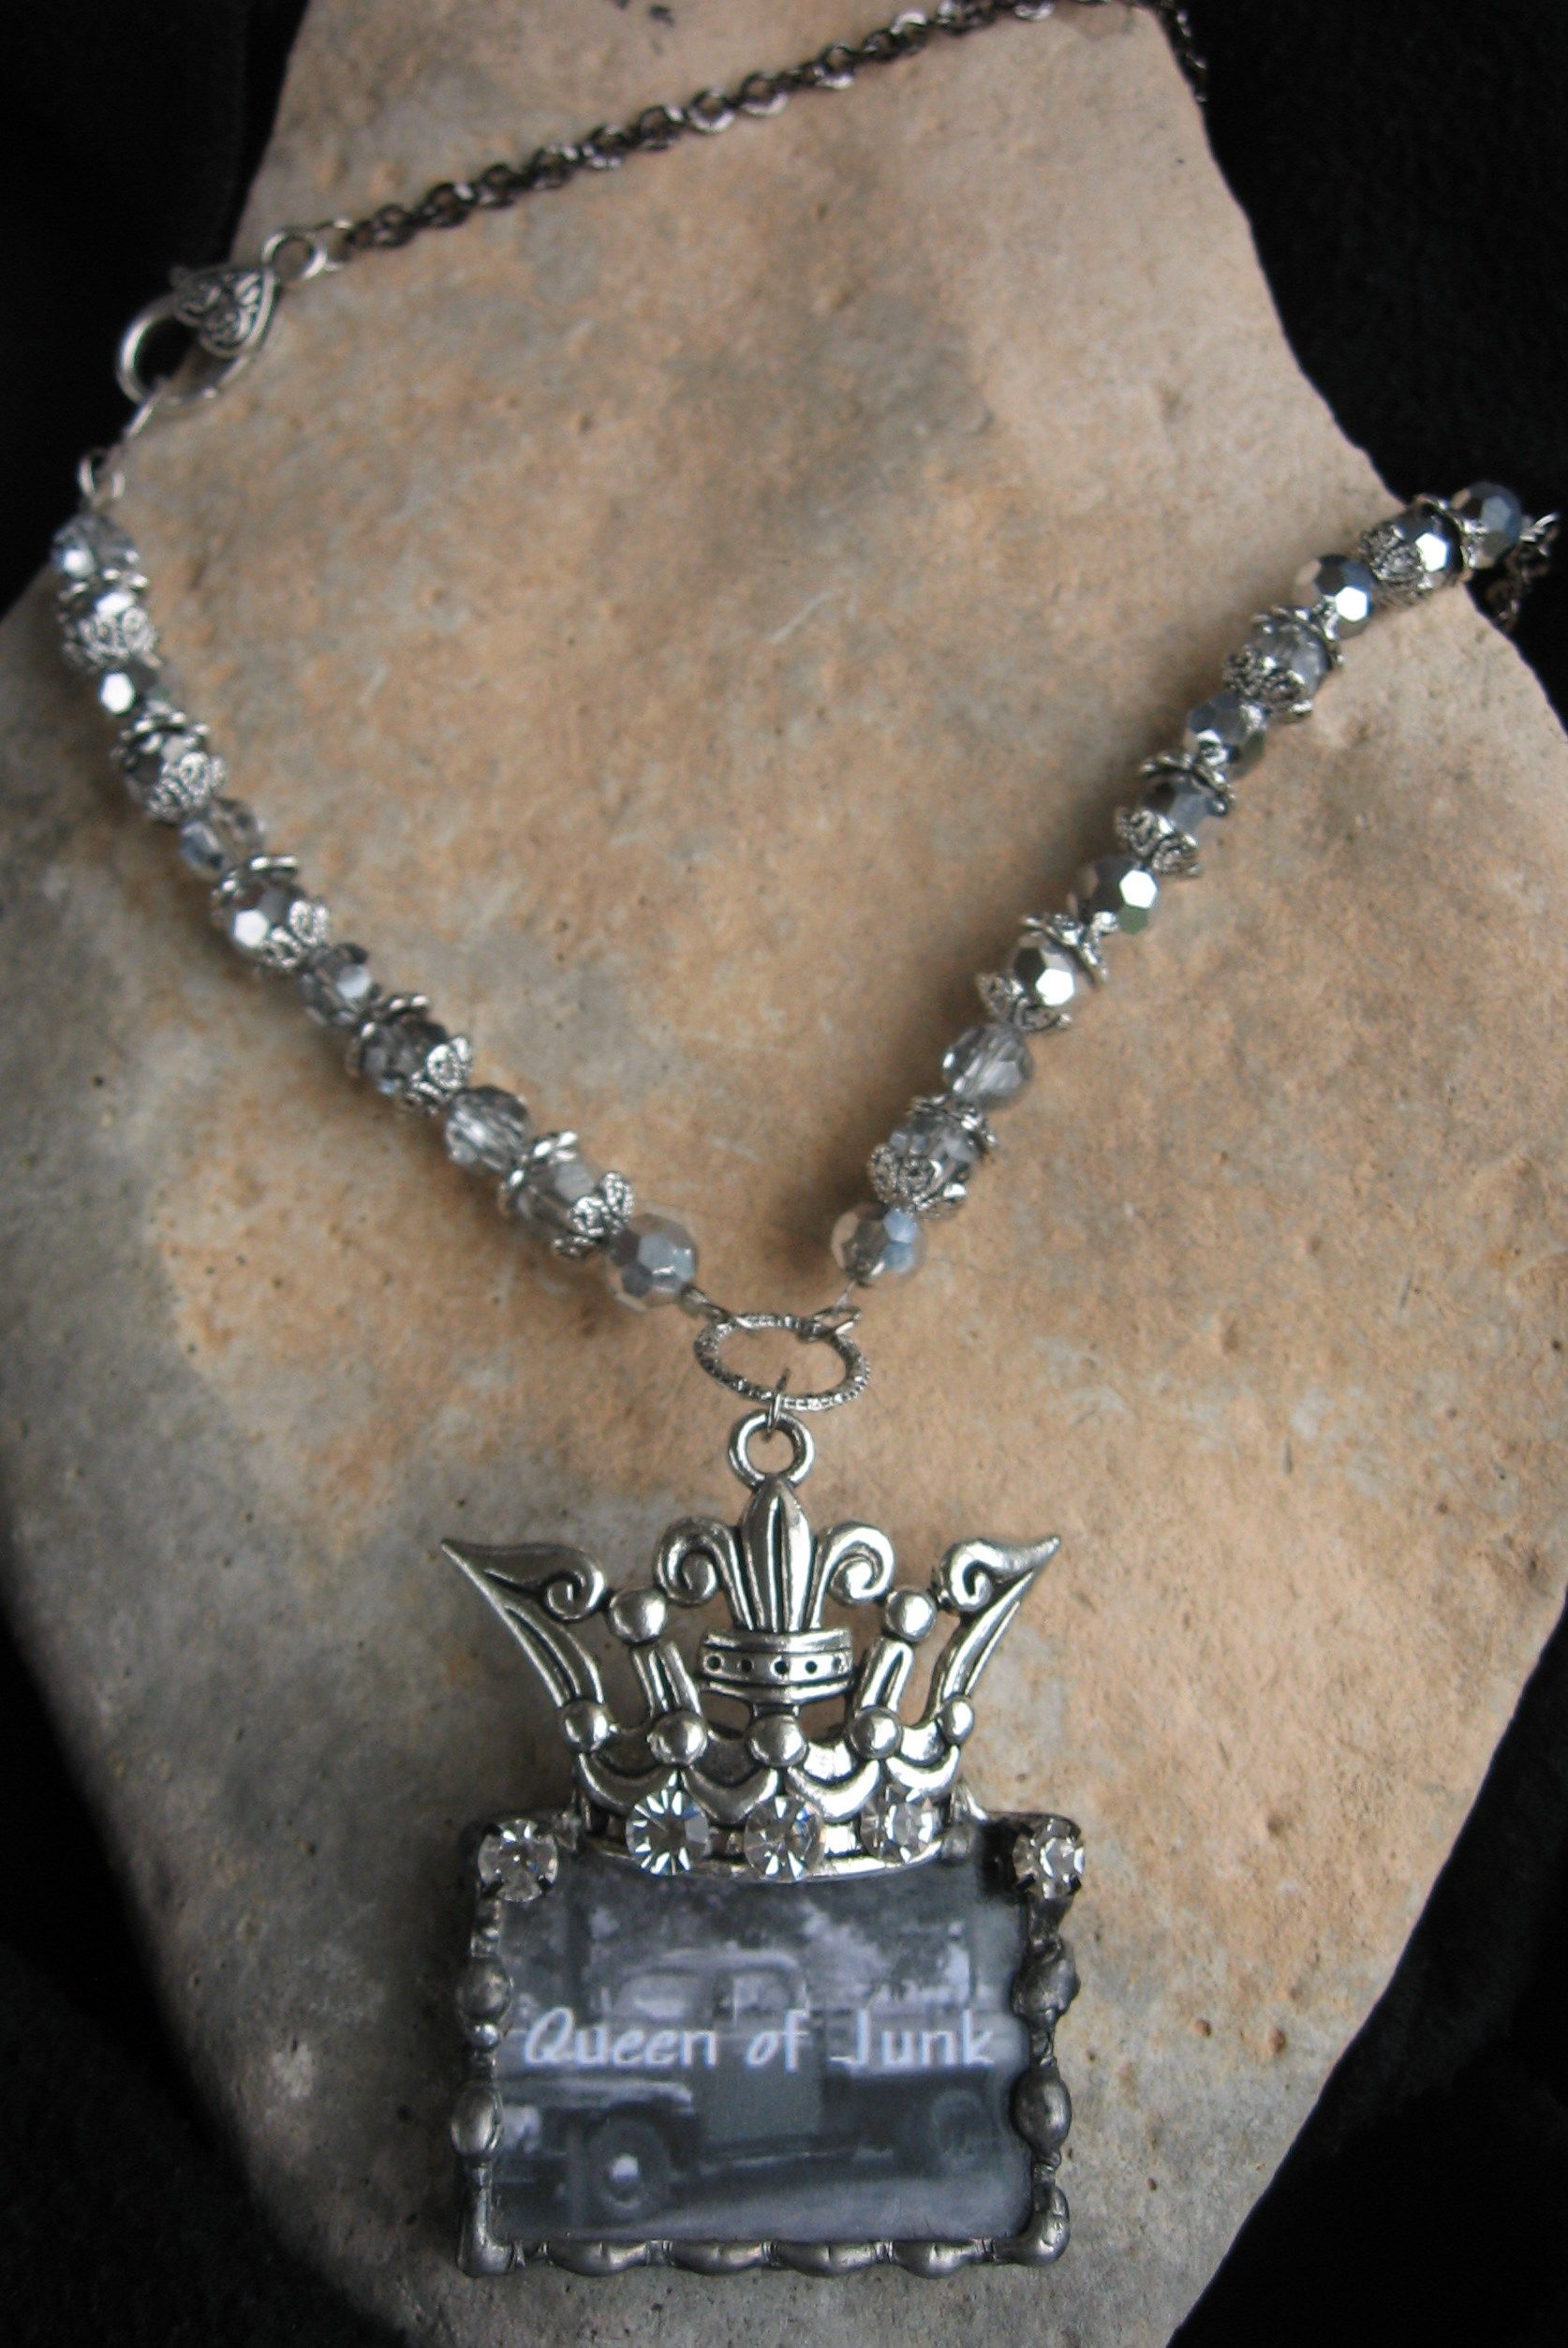 Queen of Junk...LOVE this big chunky pendant/necklace! www.nanettemc.etsy.com